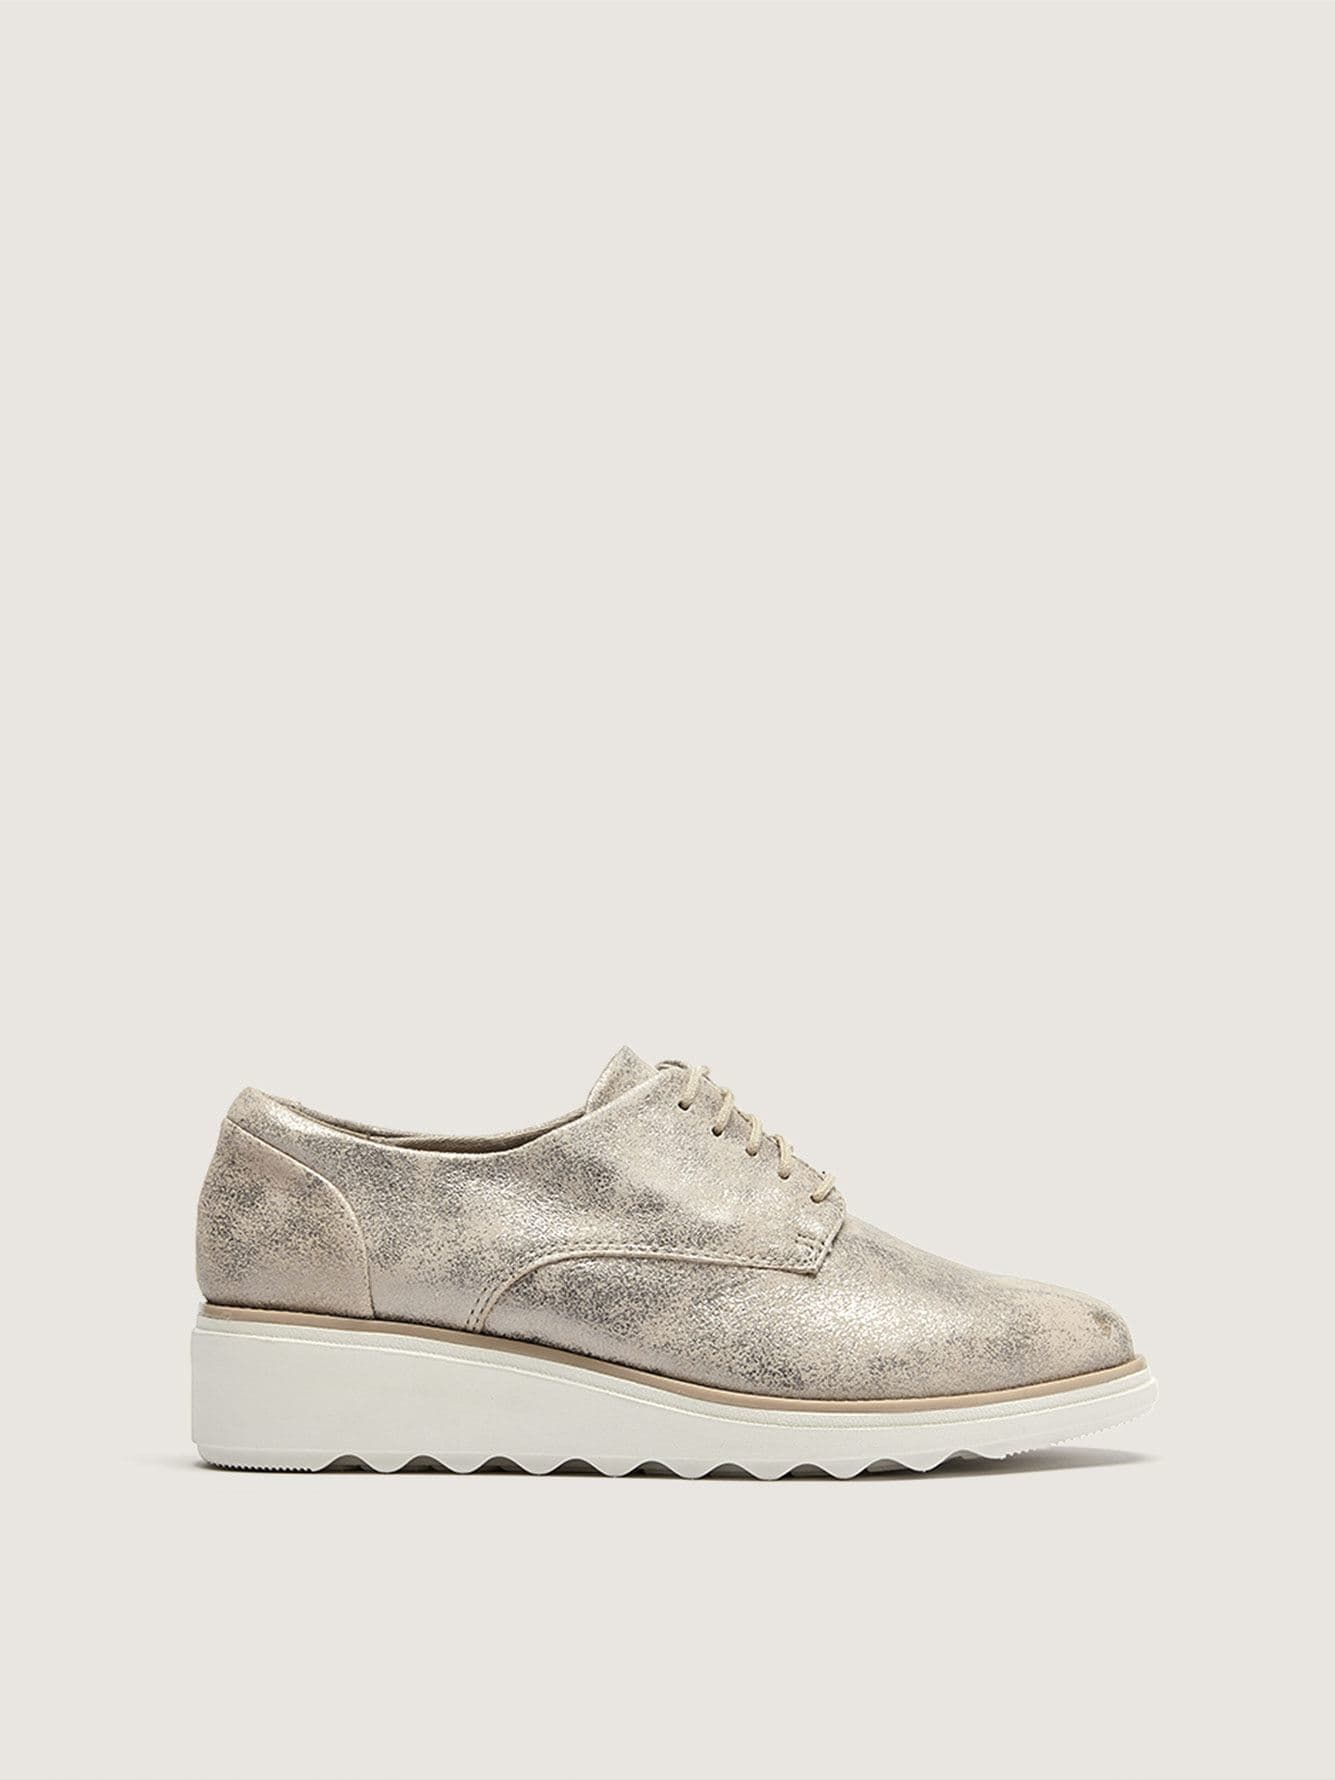 Wide Sharon Crystal Lace Up Shoes - Clarks